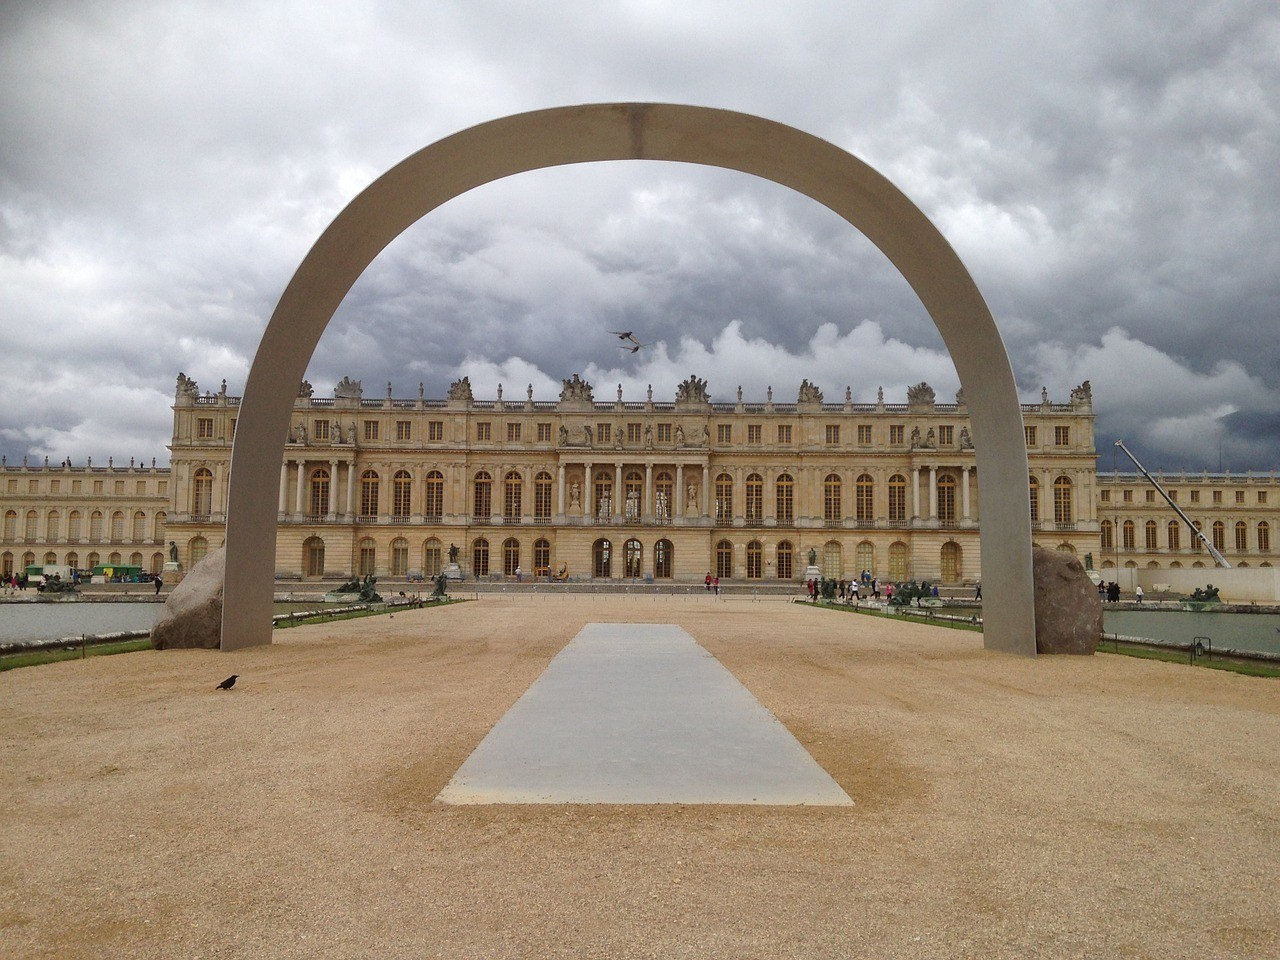 Palace of Versailles - A very cool place in Paris to go for a day